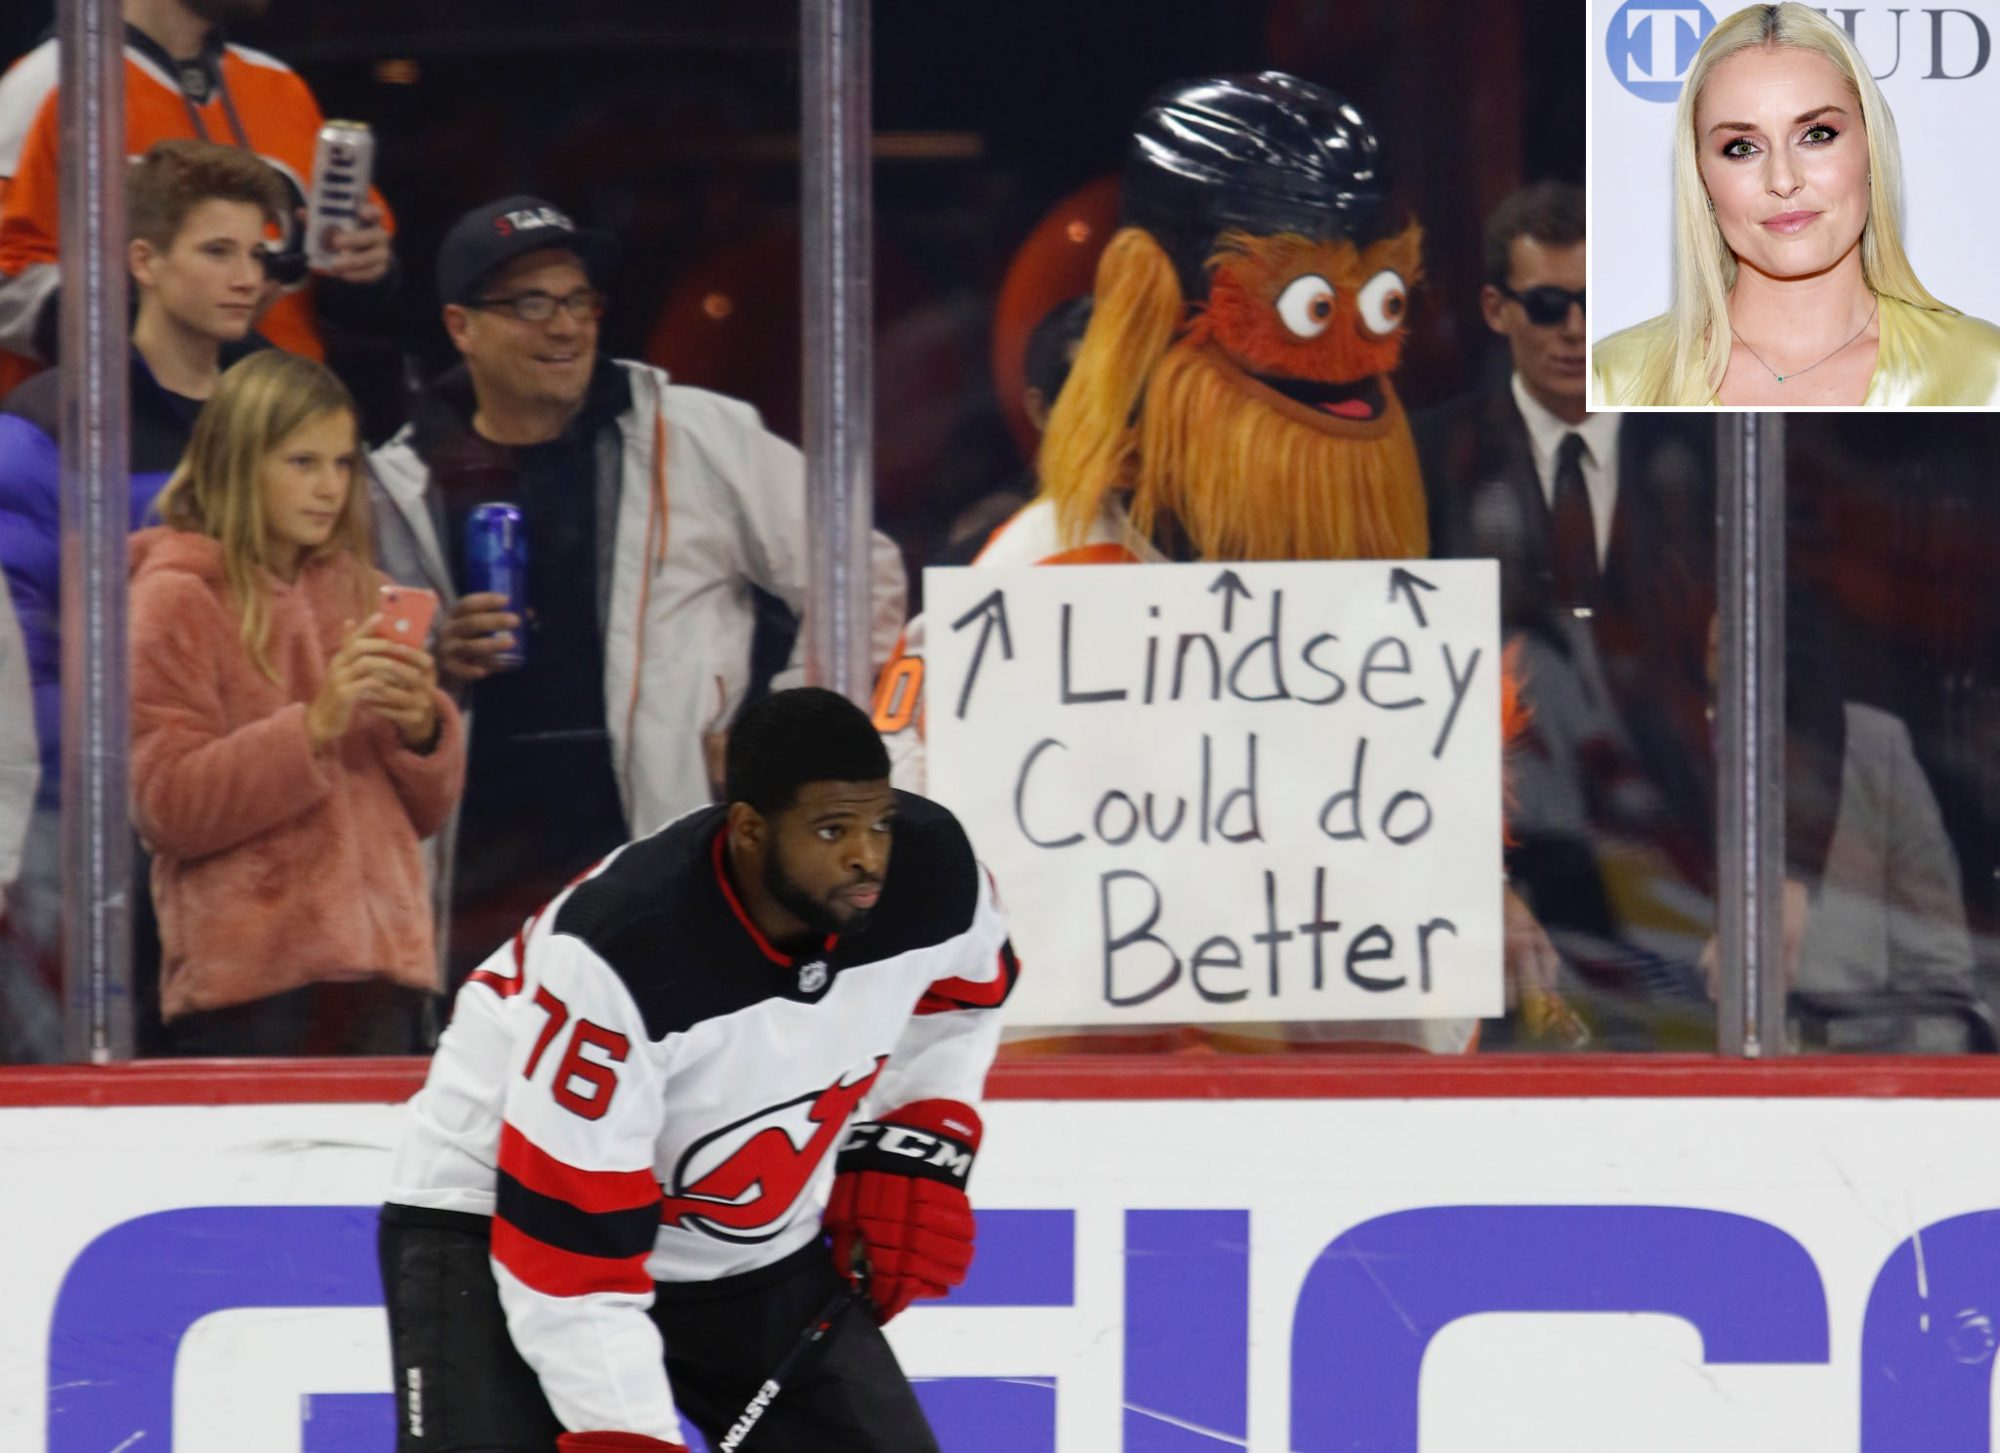 Lindsay Vonn, P.K. Subban and Gritty